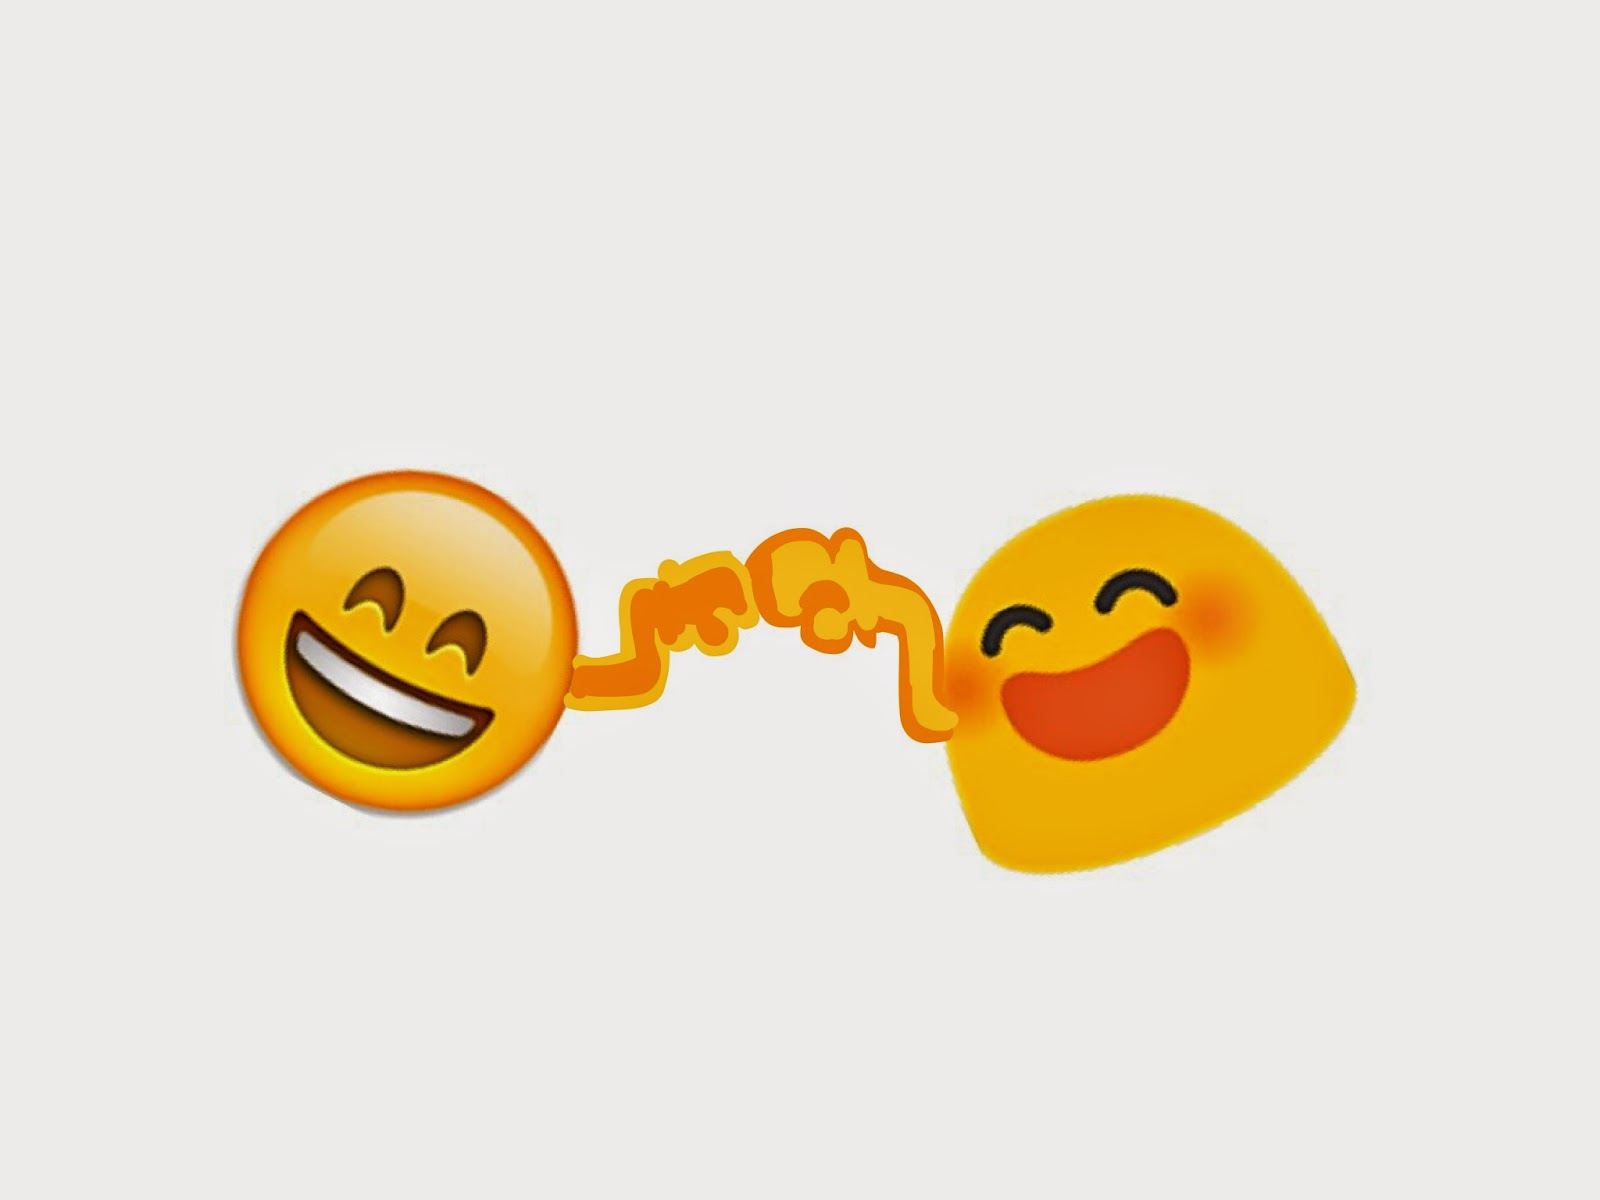 1600x1200 Graphics, Emoji, Art Clipart And Illustration Fist Bump Android